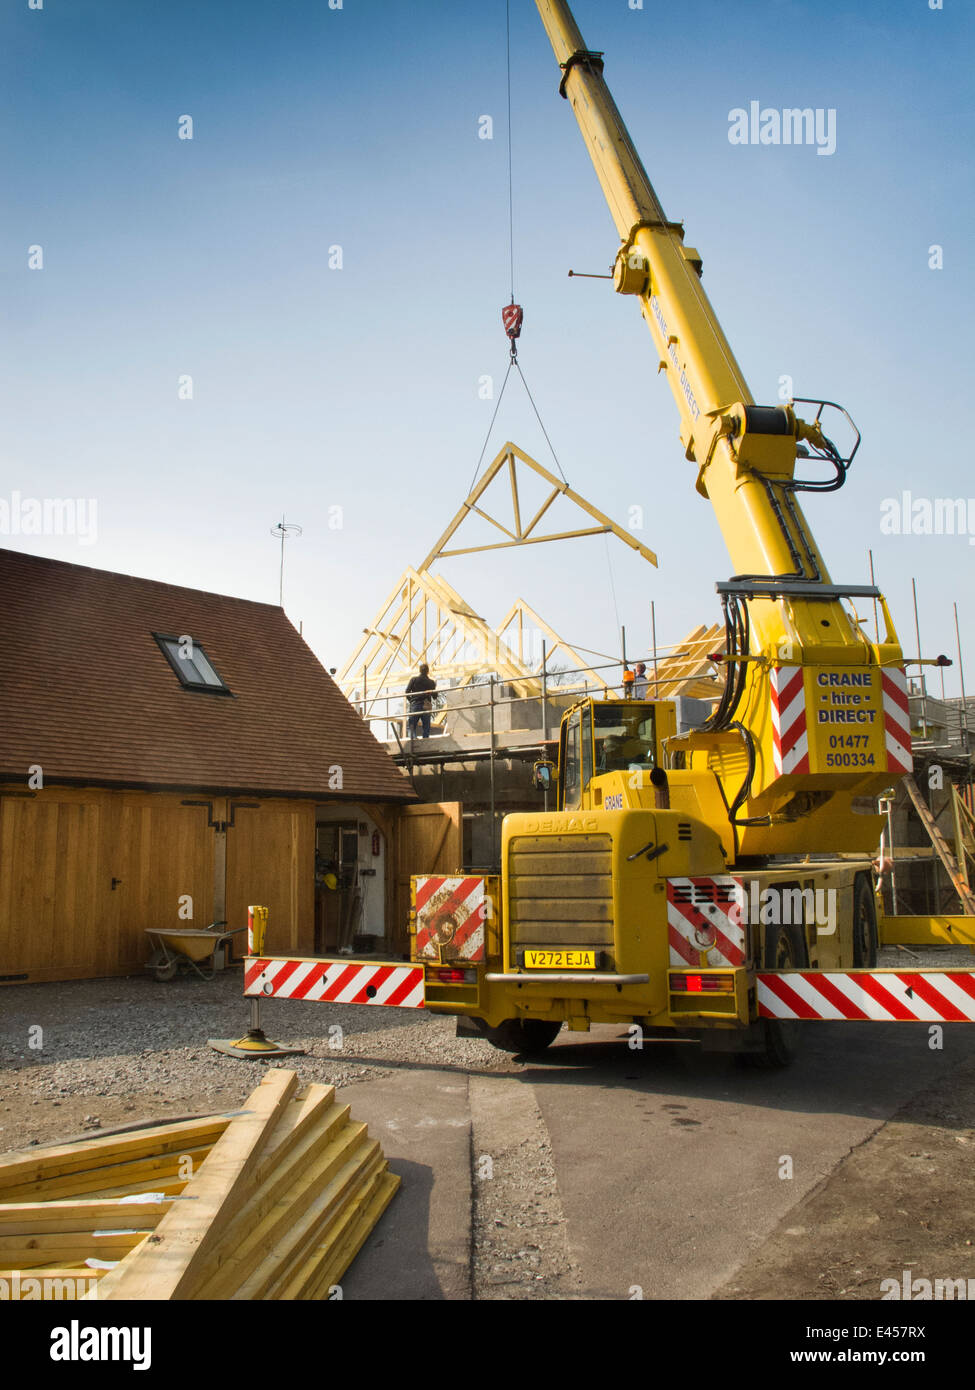 self building house, constructing roof, lifting roof trusses with rented crane - Stock Image